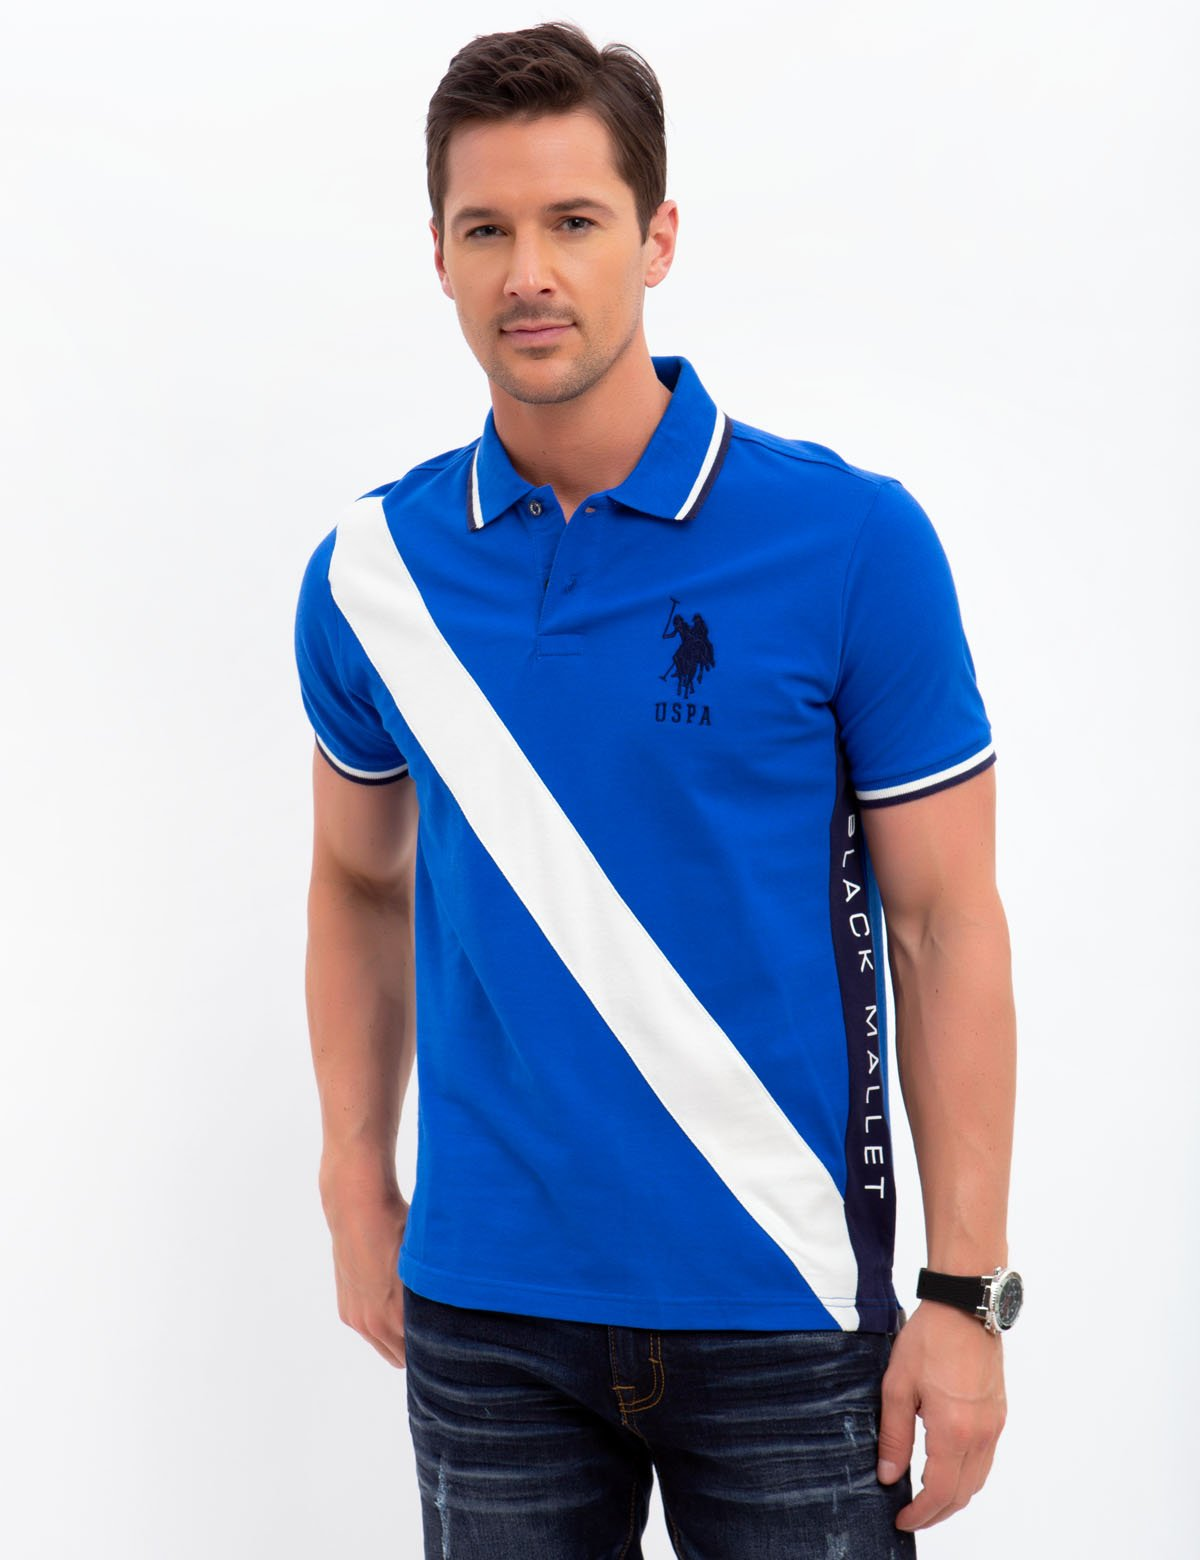 SLIM FIT BLACK MALLET DIAGONAL STRIPE POLO SHIRT